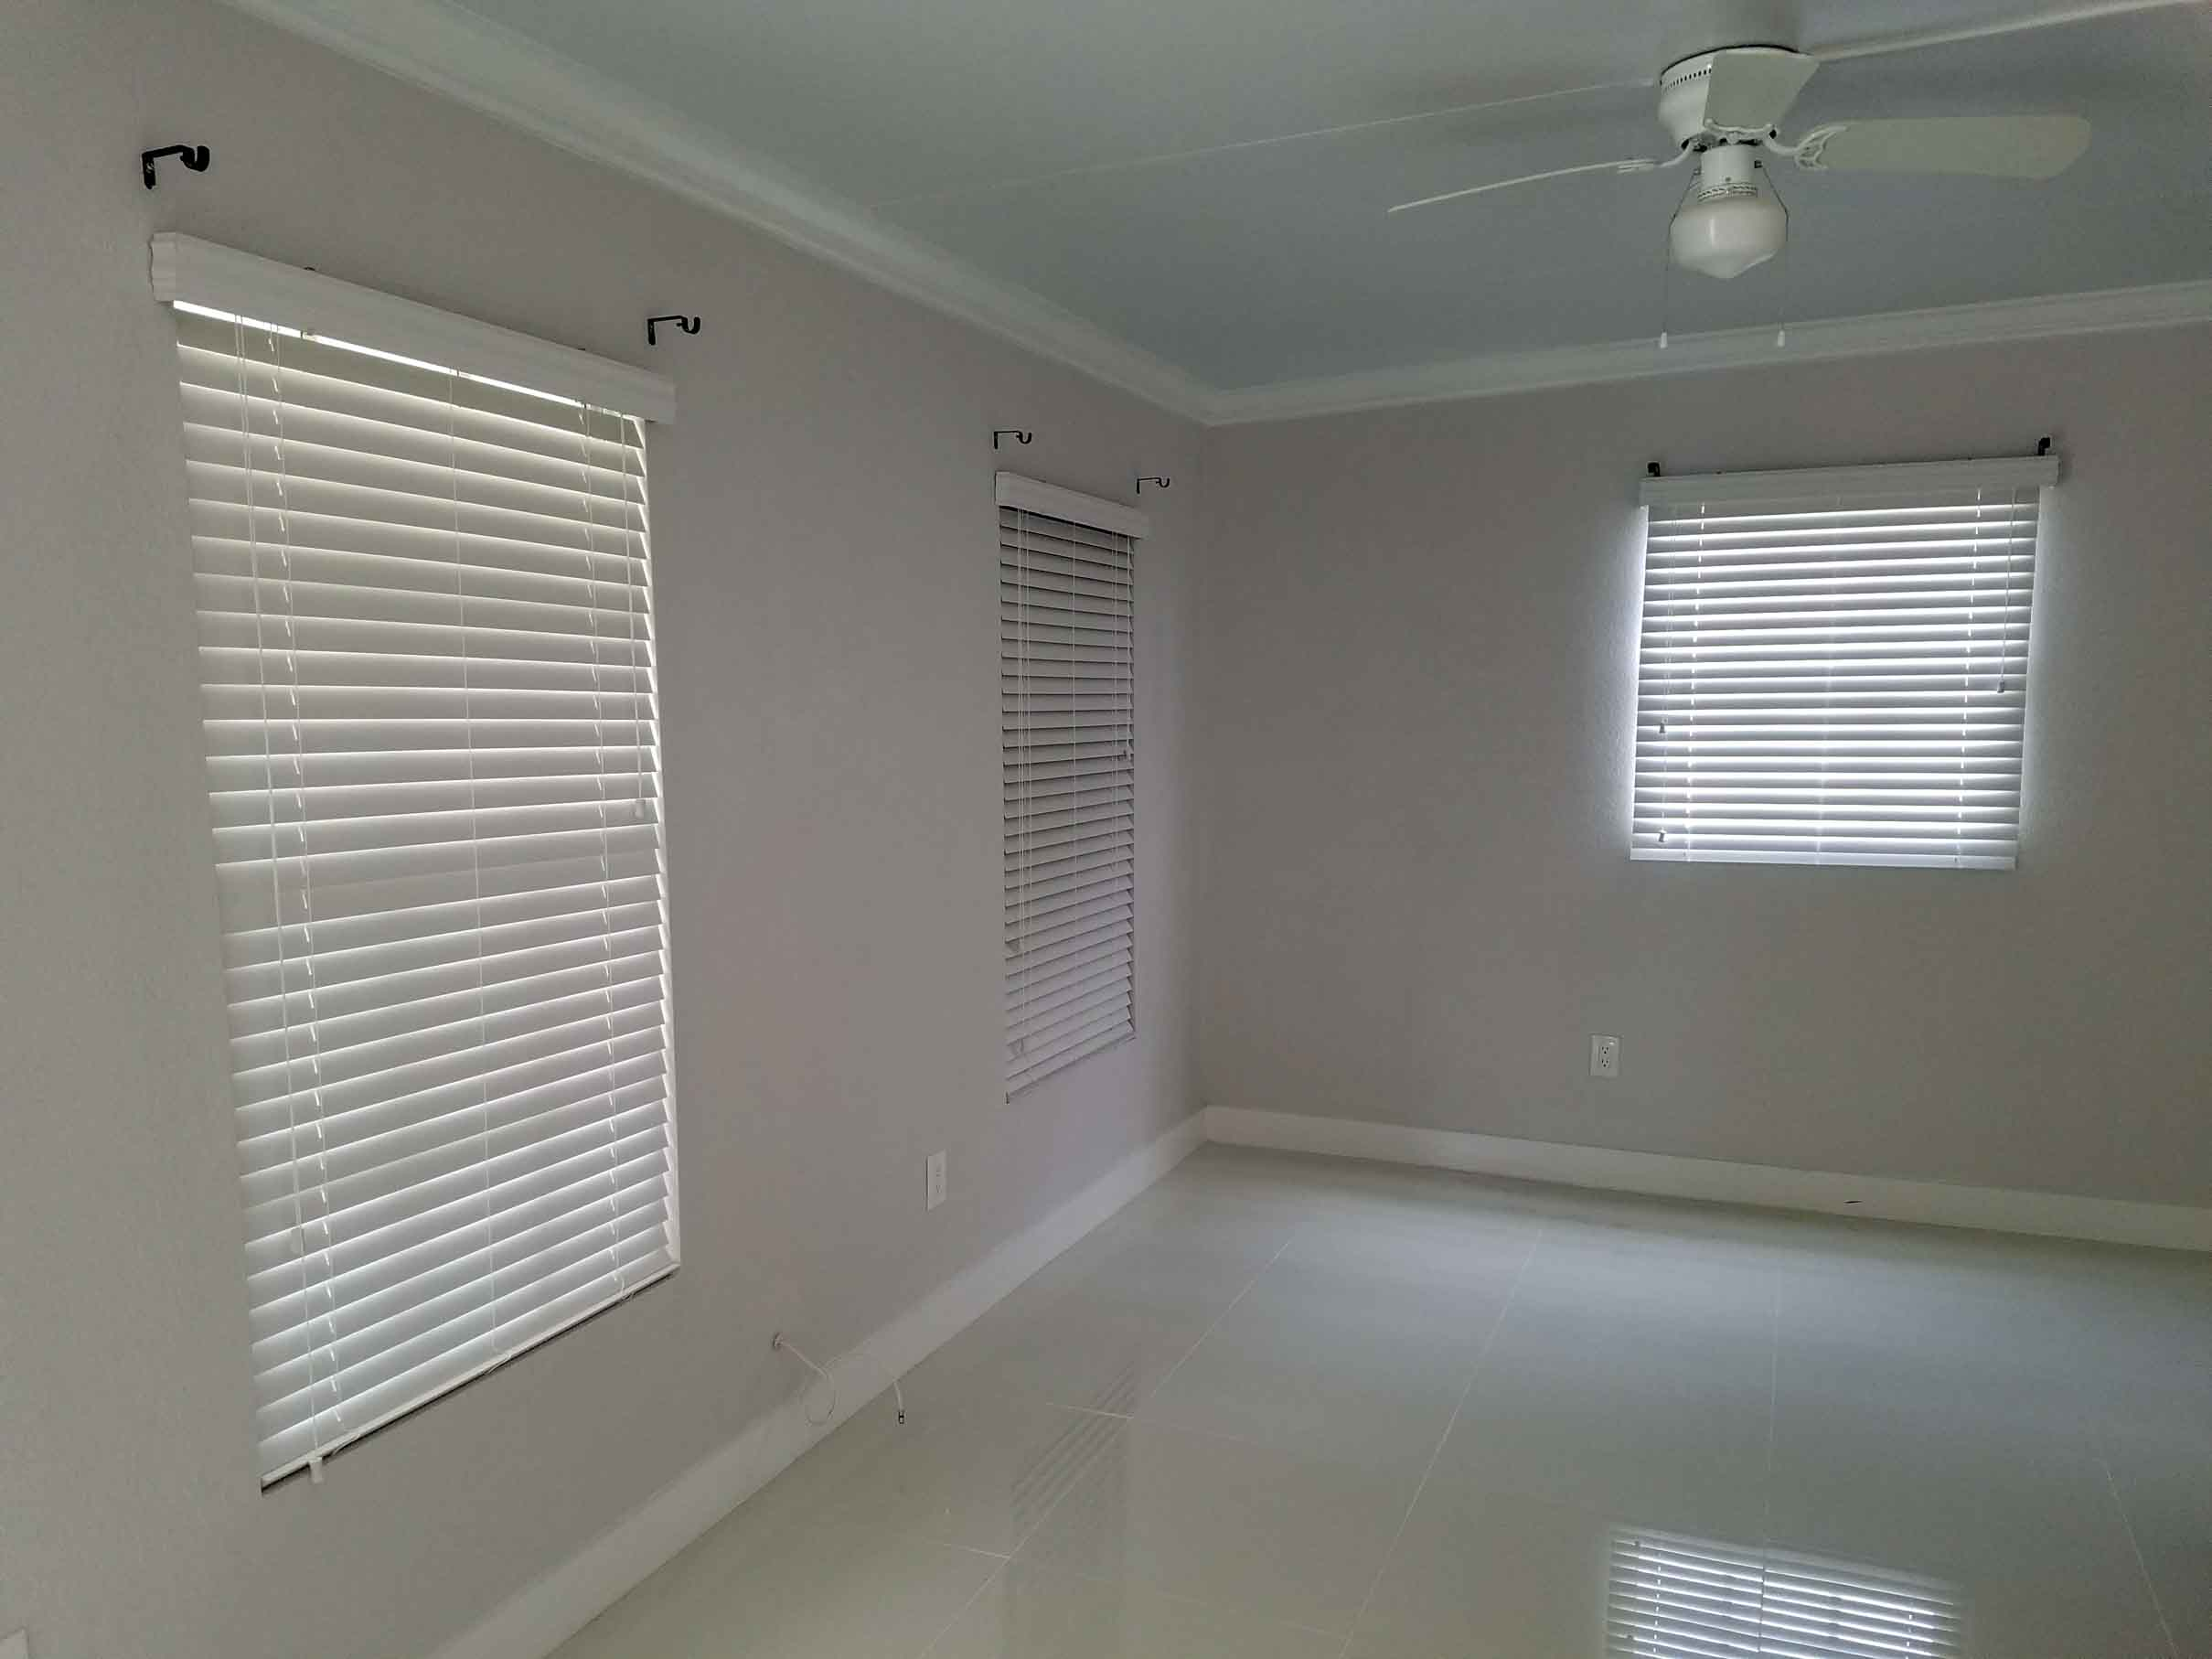 wood blinds gallery WOOD BLINDS GALLERY 20180120 120556